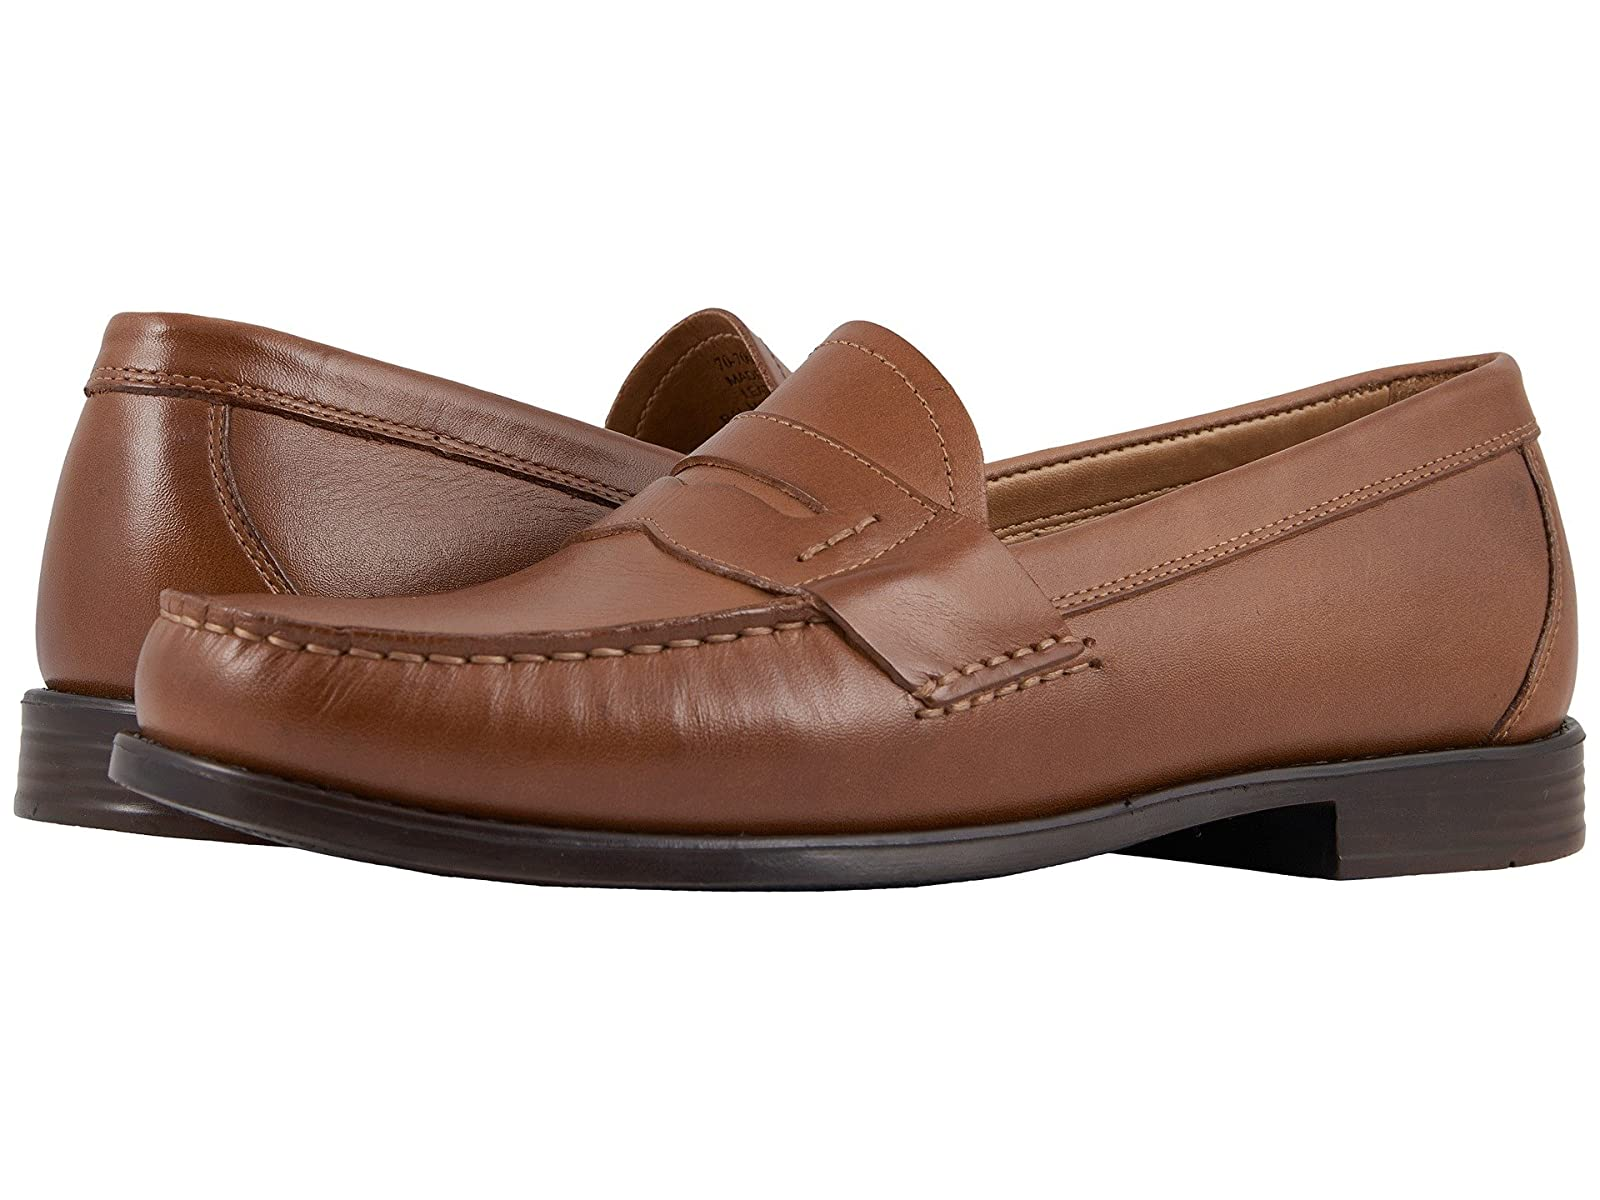 G.H. Bass & Co. WagnerAtmospheric grades have affordable shoes